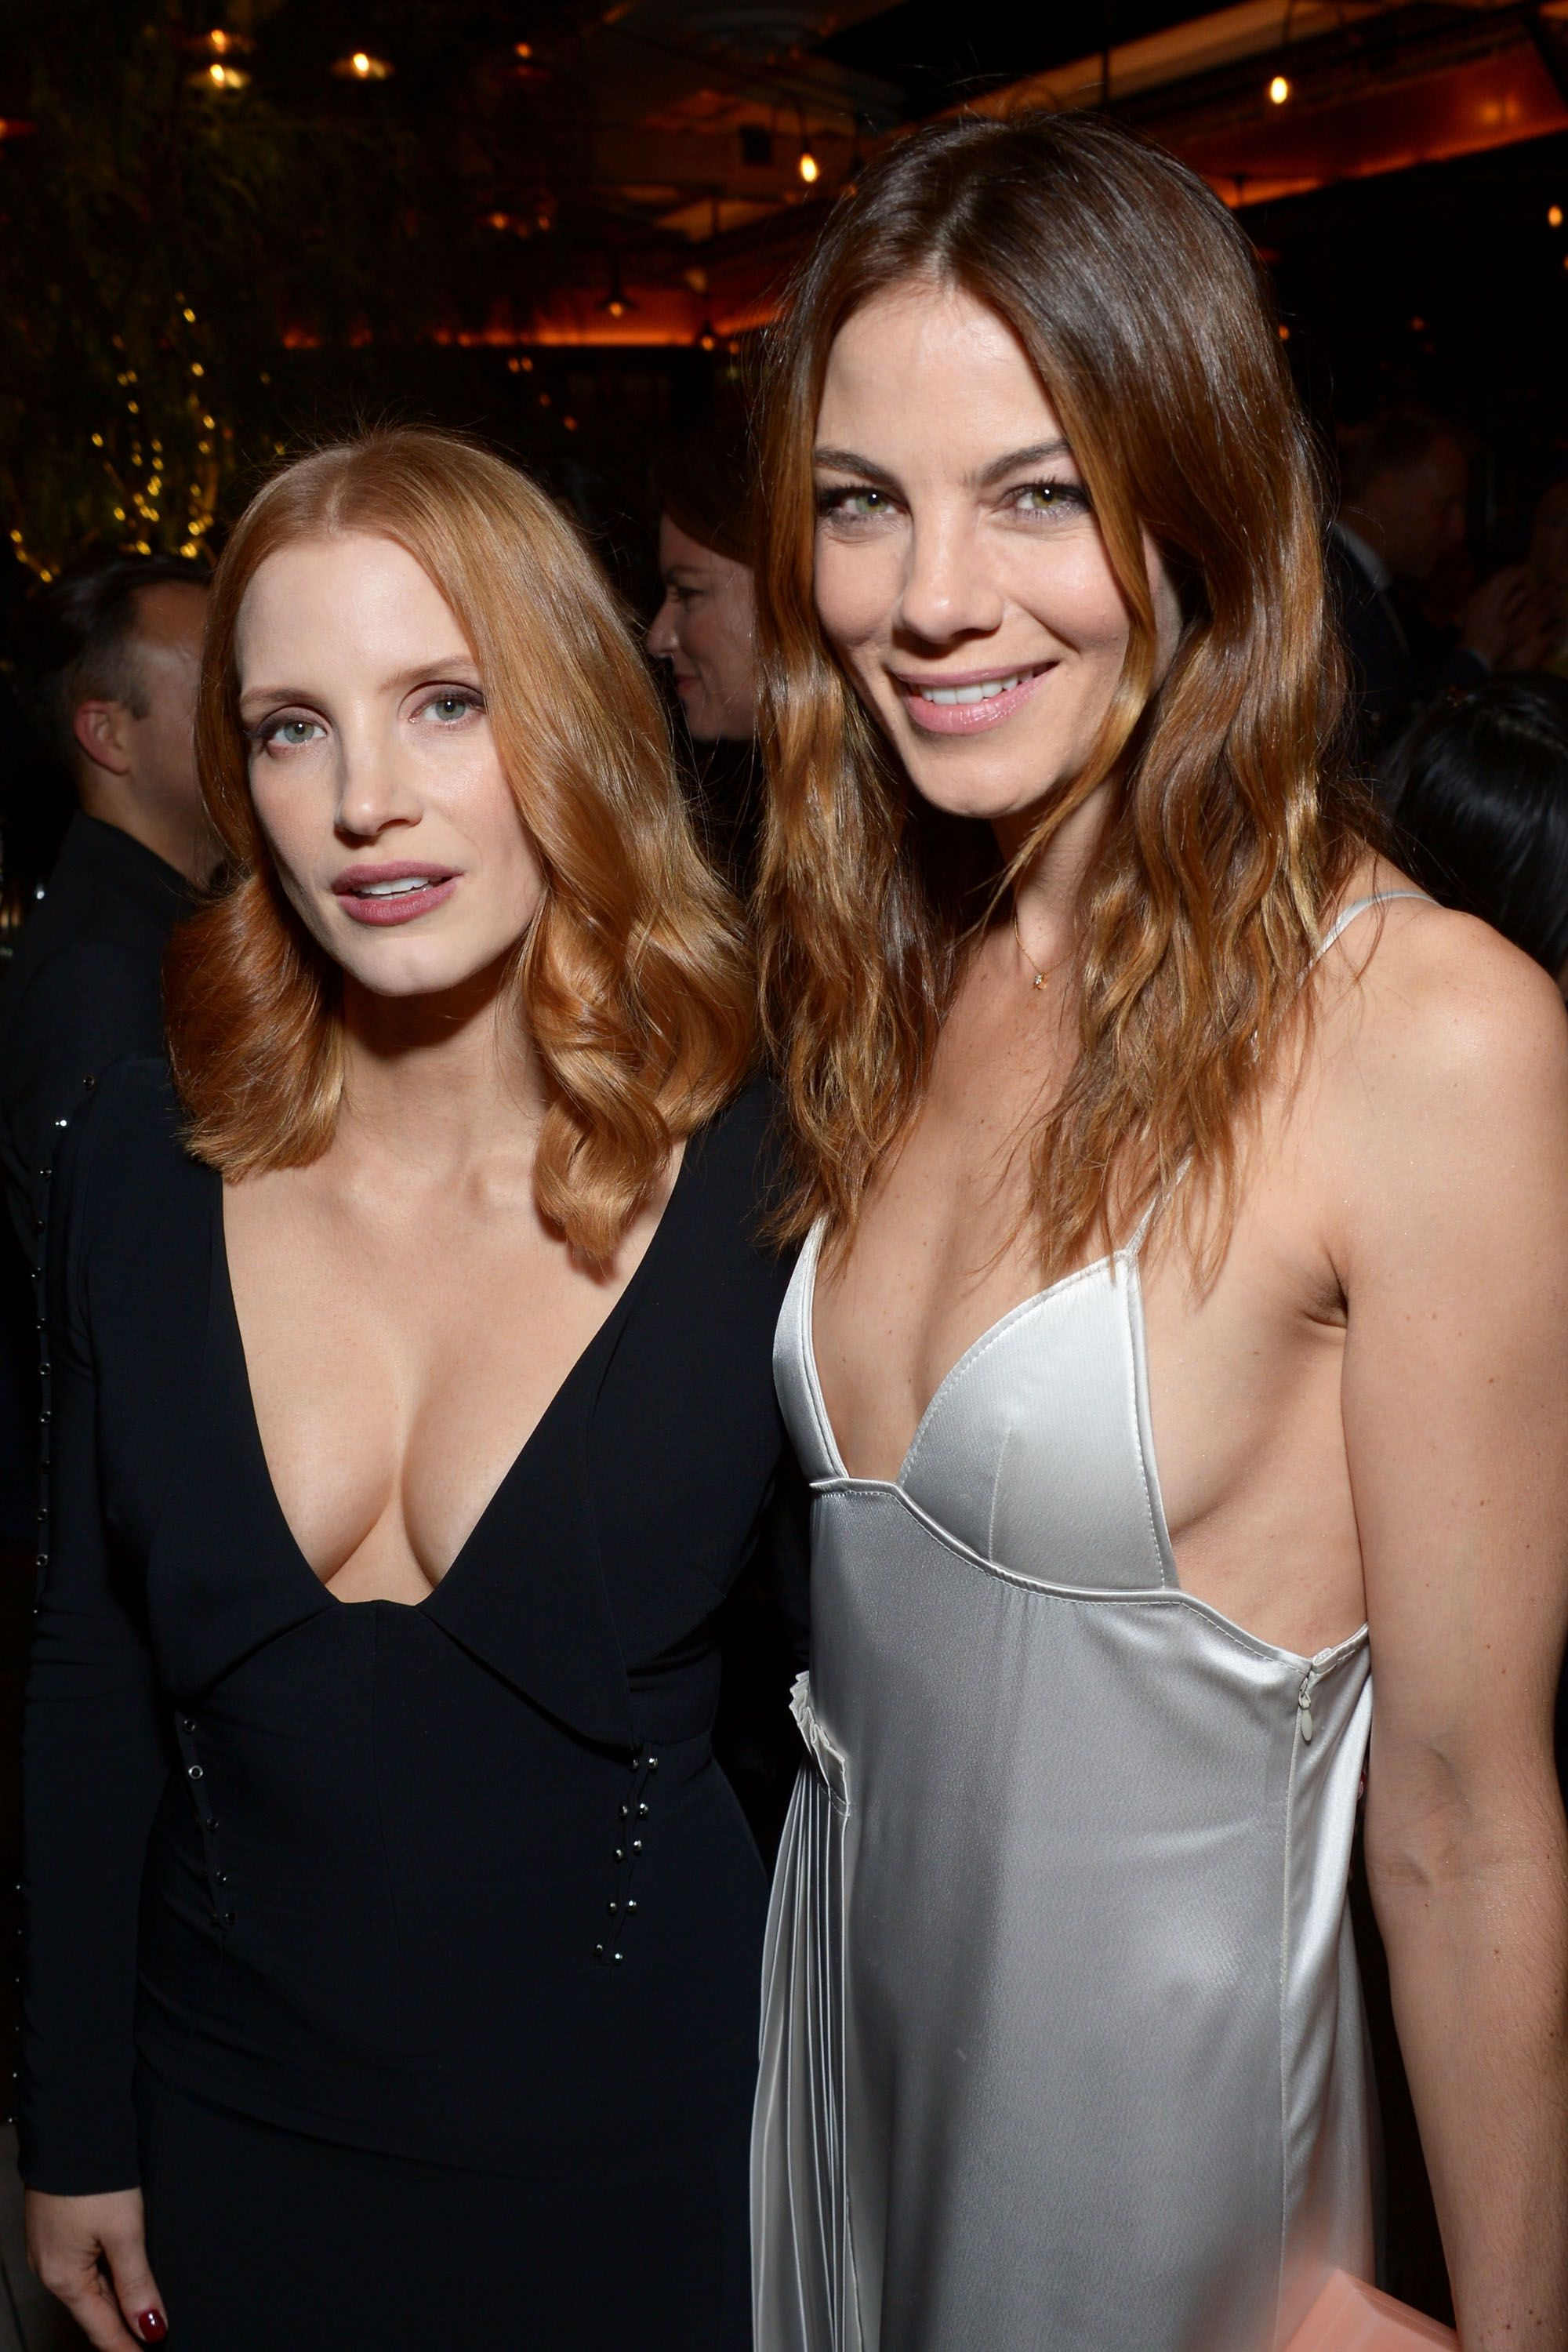 Jessica Chastain & Michelle Monaghan